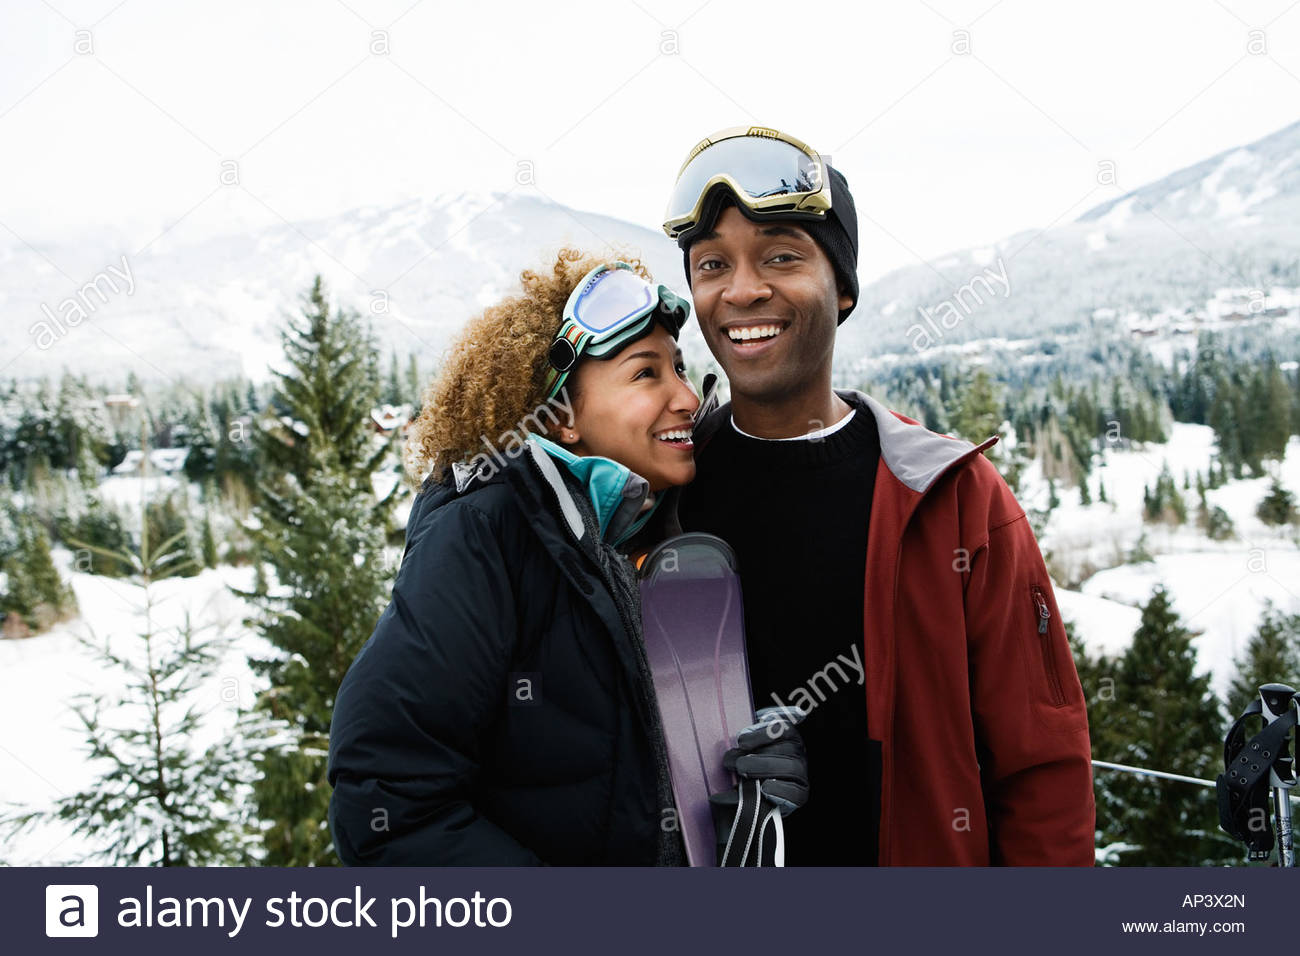 A couple in skiwear - Stock Image